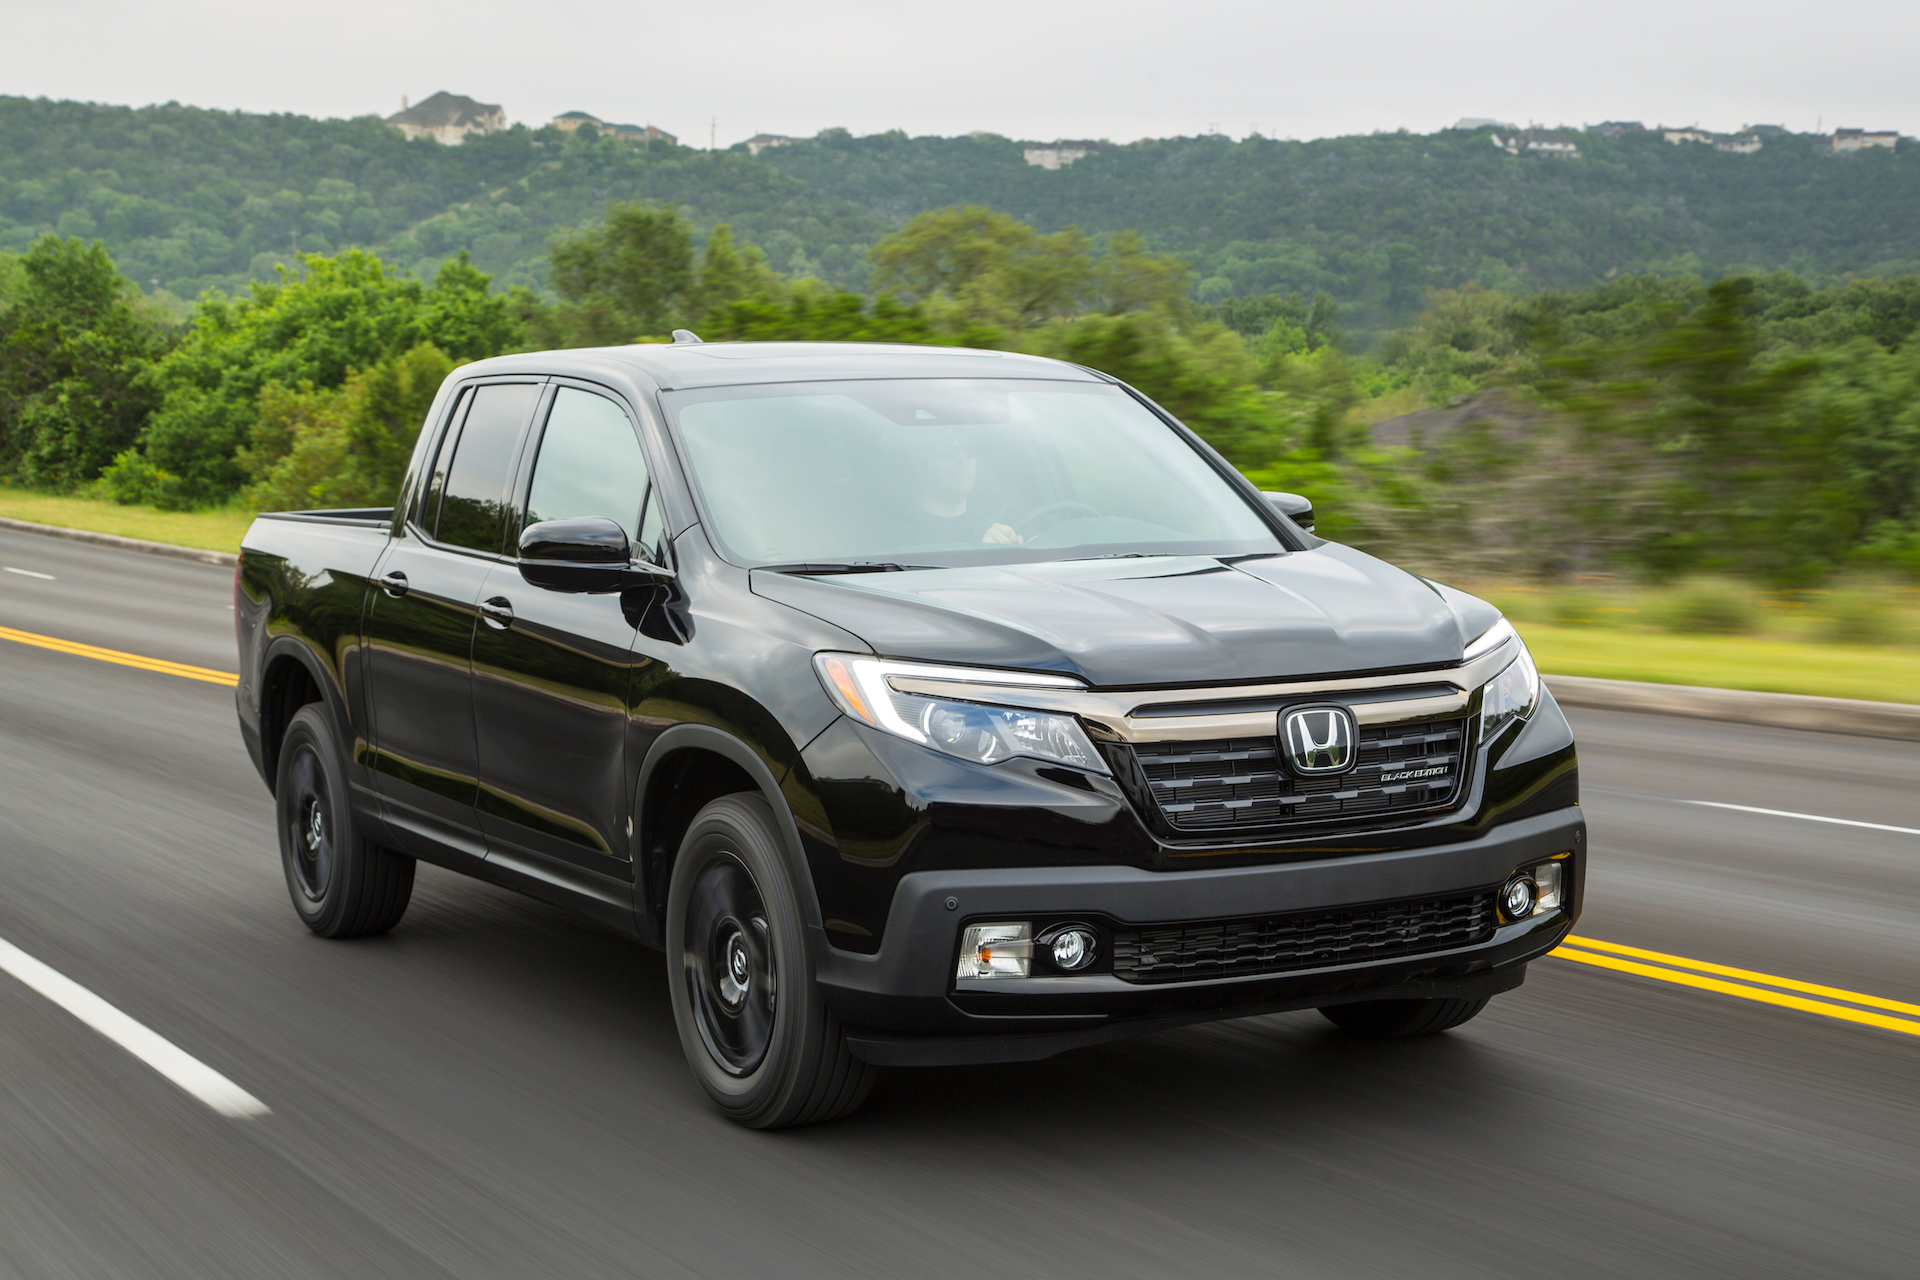 2017 Honda Ridgeline Quality Review - The Car Connection